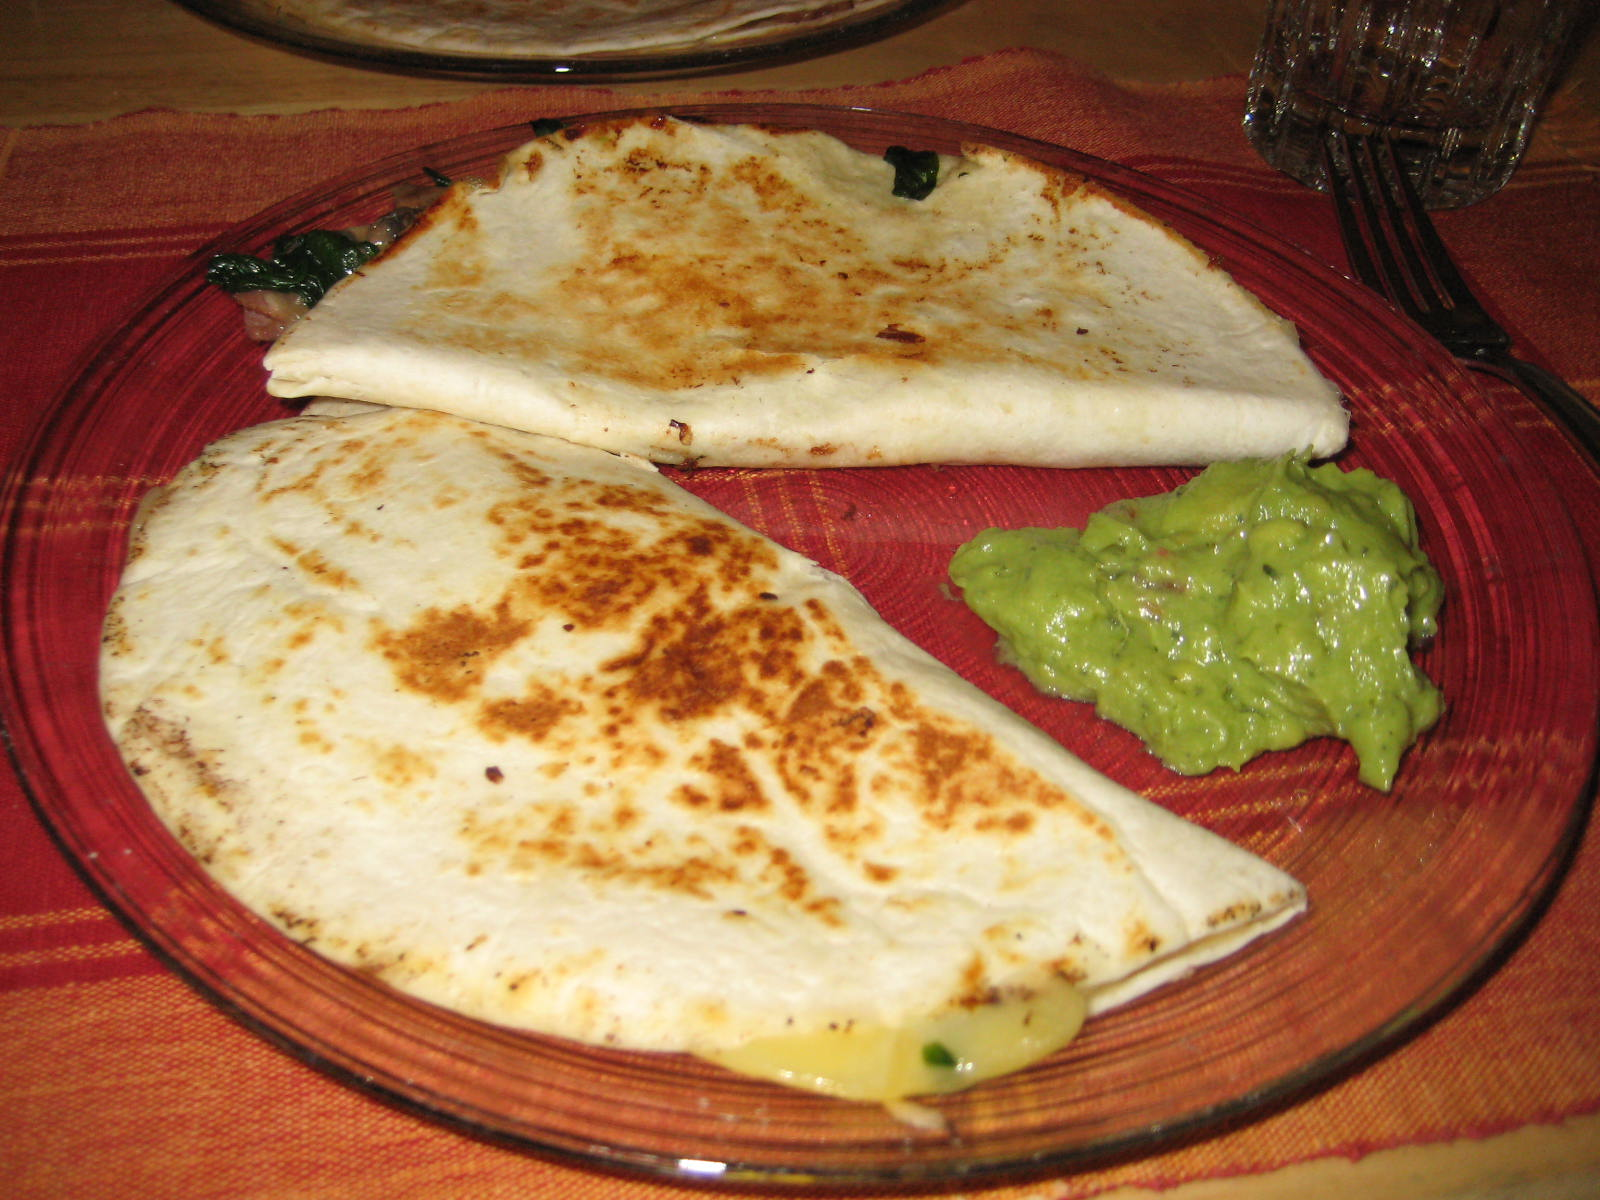 Quesadillas: my favorite Mexican food! Specially with fillings of chorizo or zucchini flower!